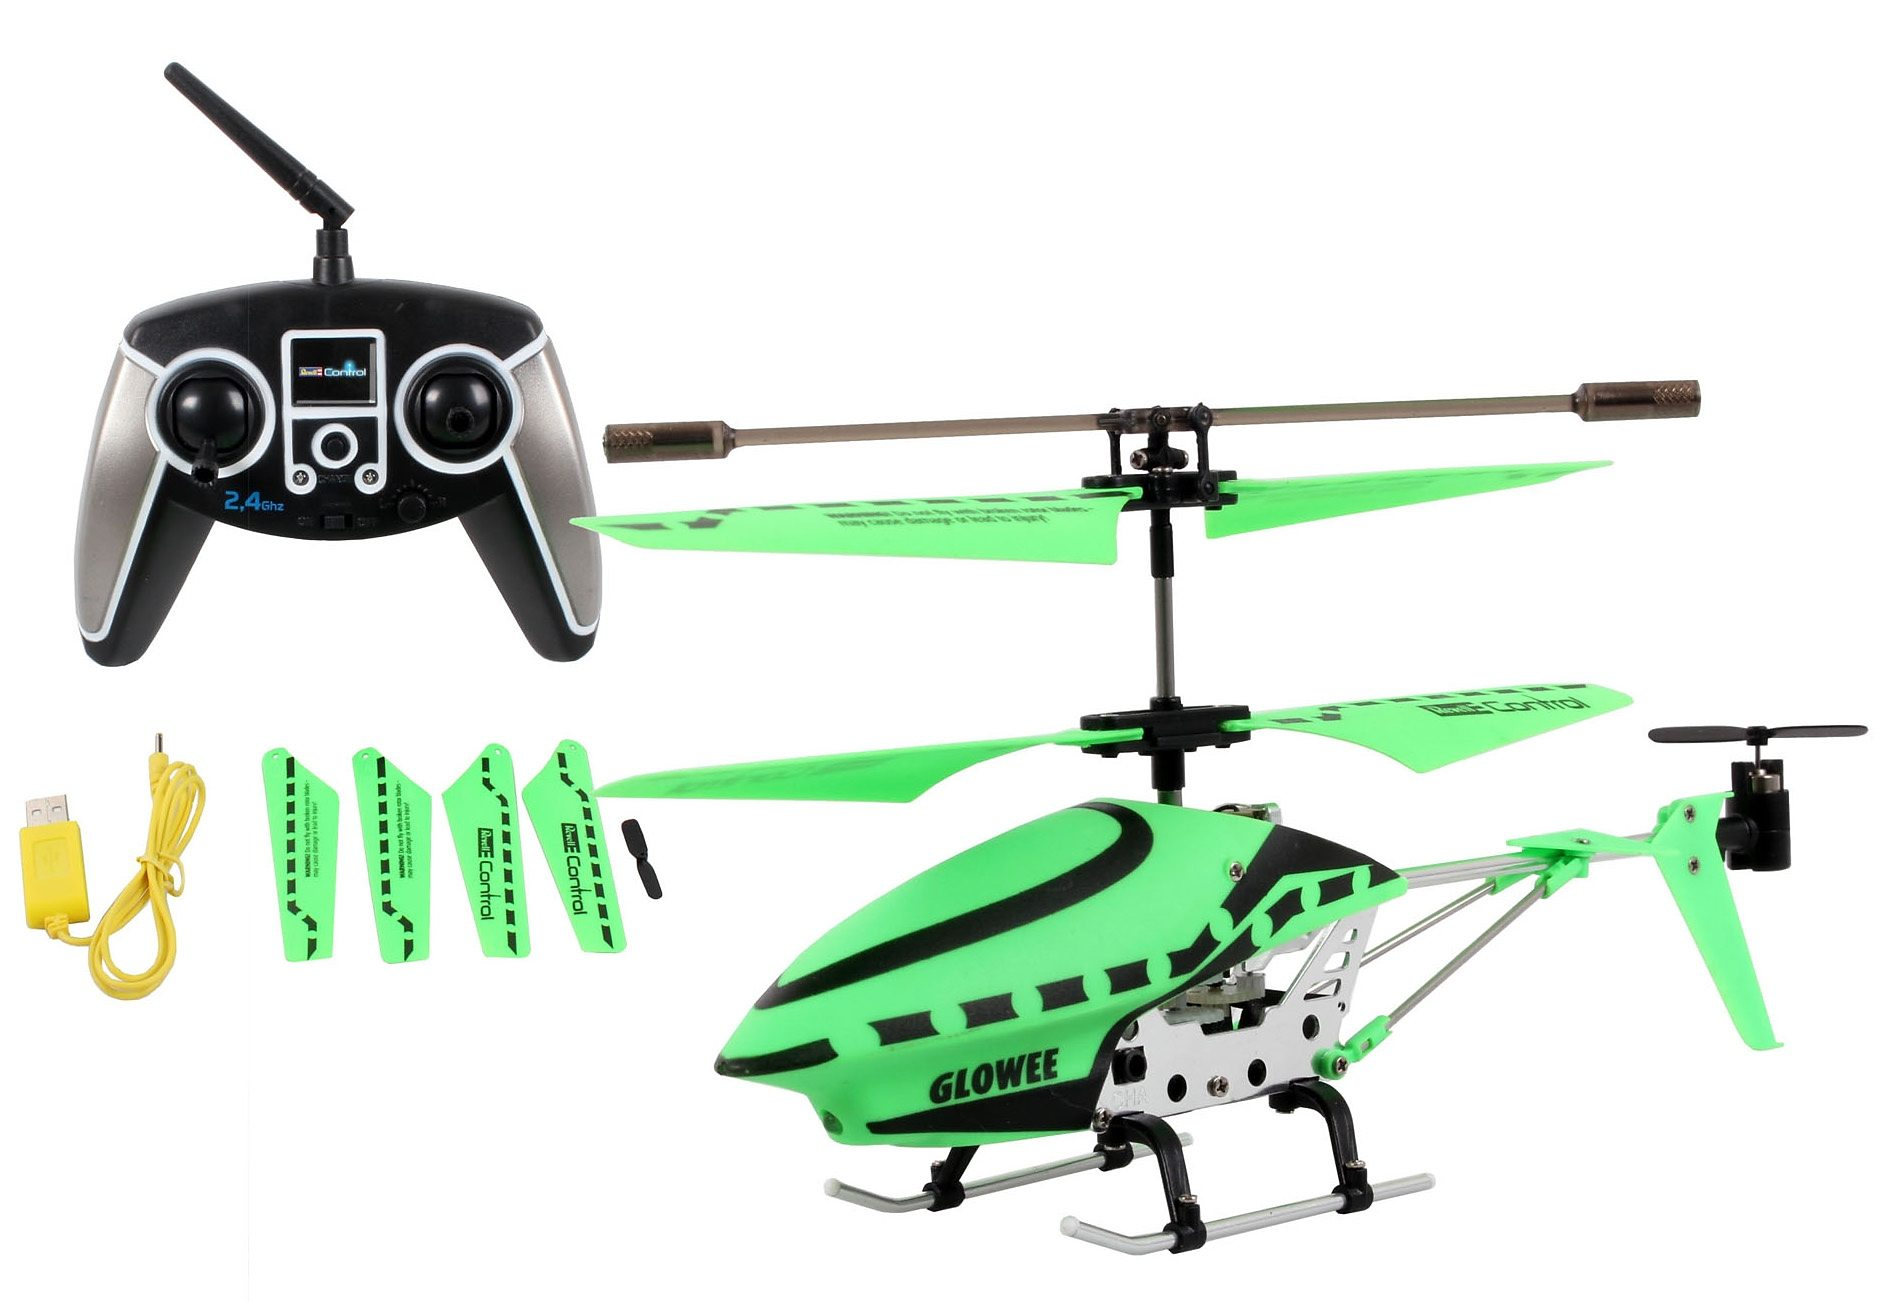 Revell® RC Hubschrauber »Revell® Control RC Heli Glowee«